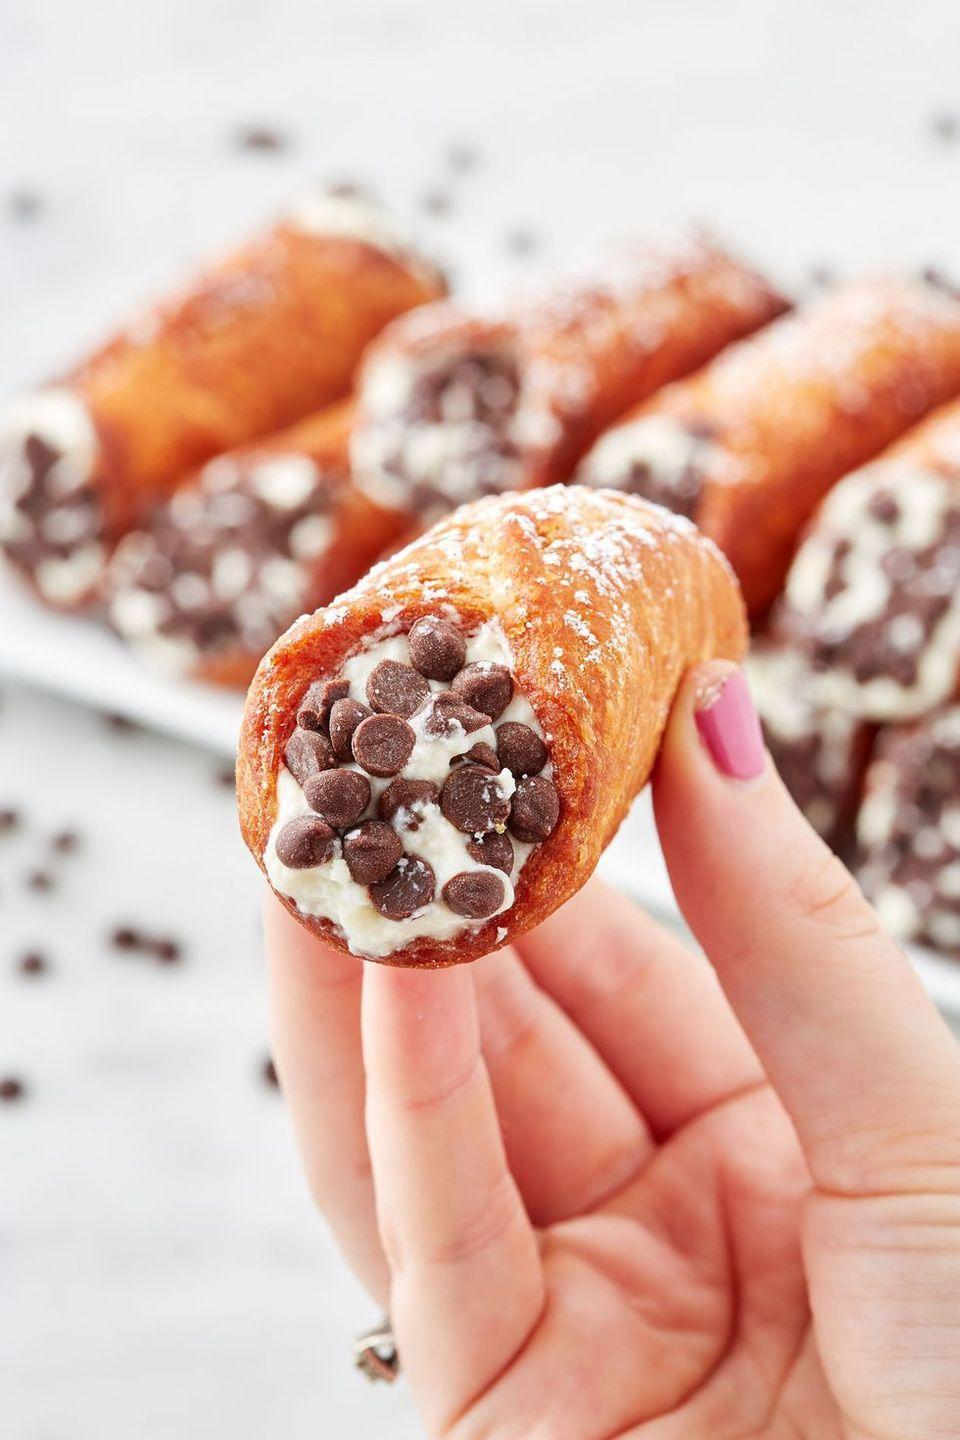 """<p>*Crams in as many chocolate chips as possible.* </p><p>Get the recipe from <a href=""""https://www.delish.com/cooking/recipe-ideas/a28626292/homemade-classic-cannoli-recipe/"""" rel=""""nofollow noopener"""" target=""""_blank"""" data-ylk=""""slk:Delish"""" class=""""link rapid-noclick-resp"""">Delish</a>.</p>"""